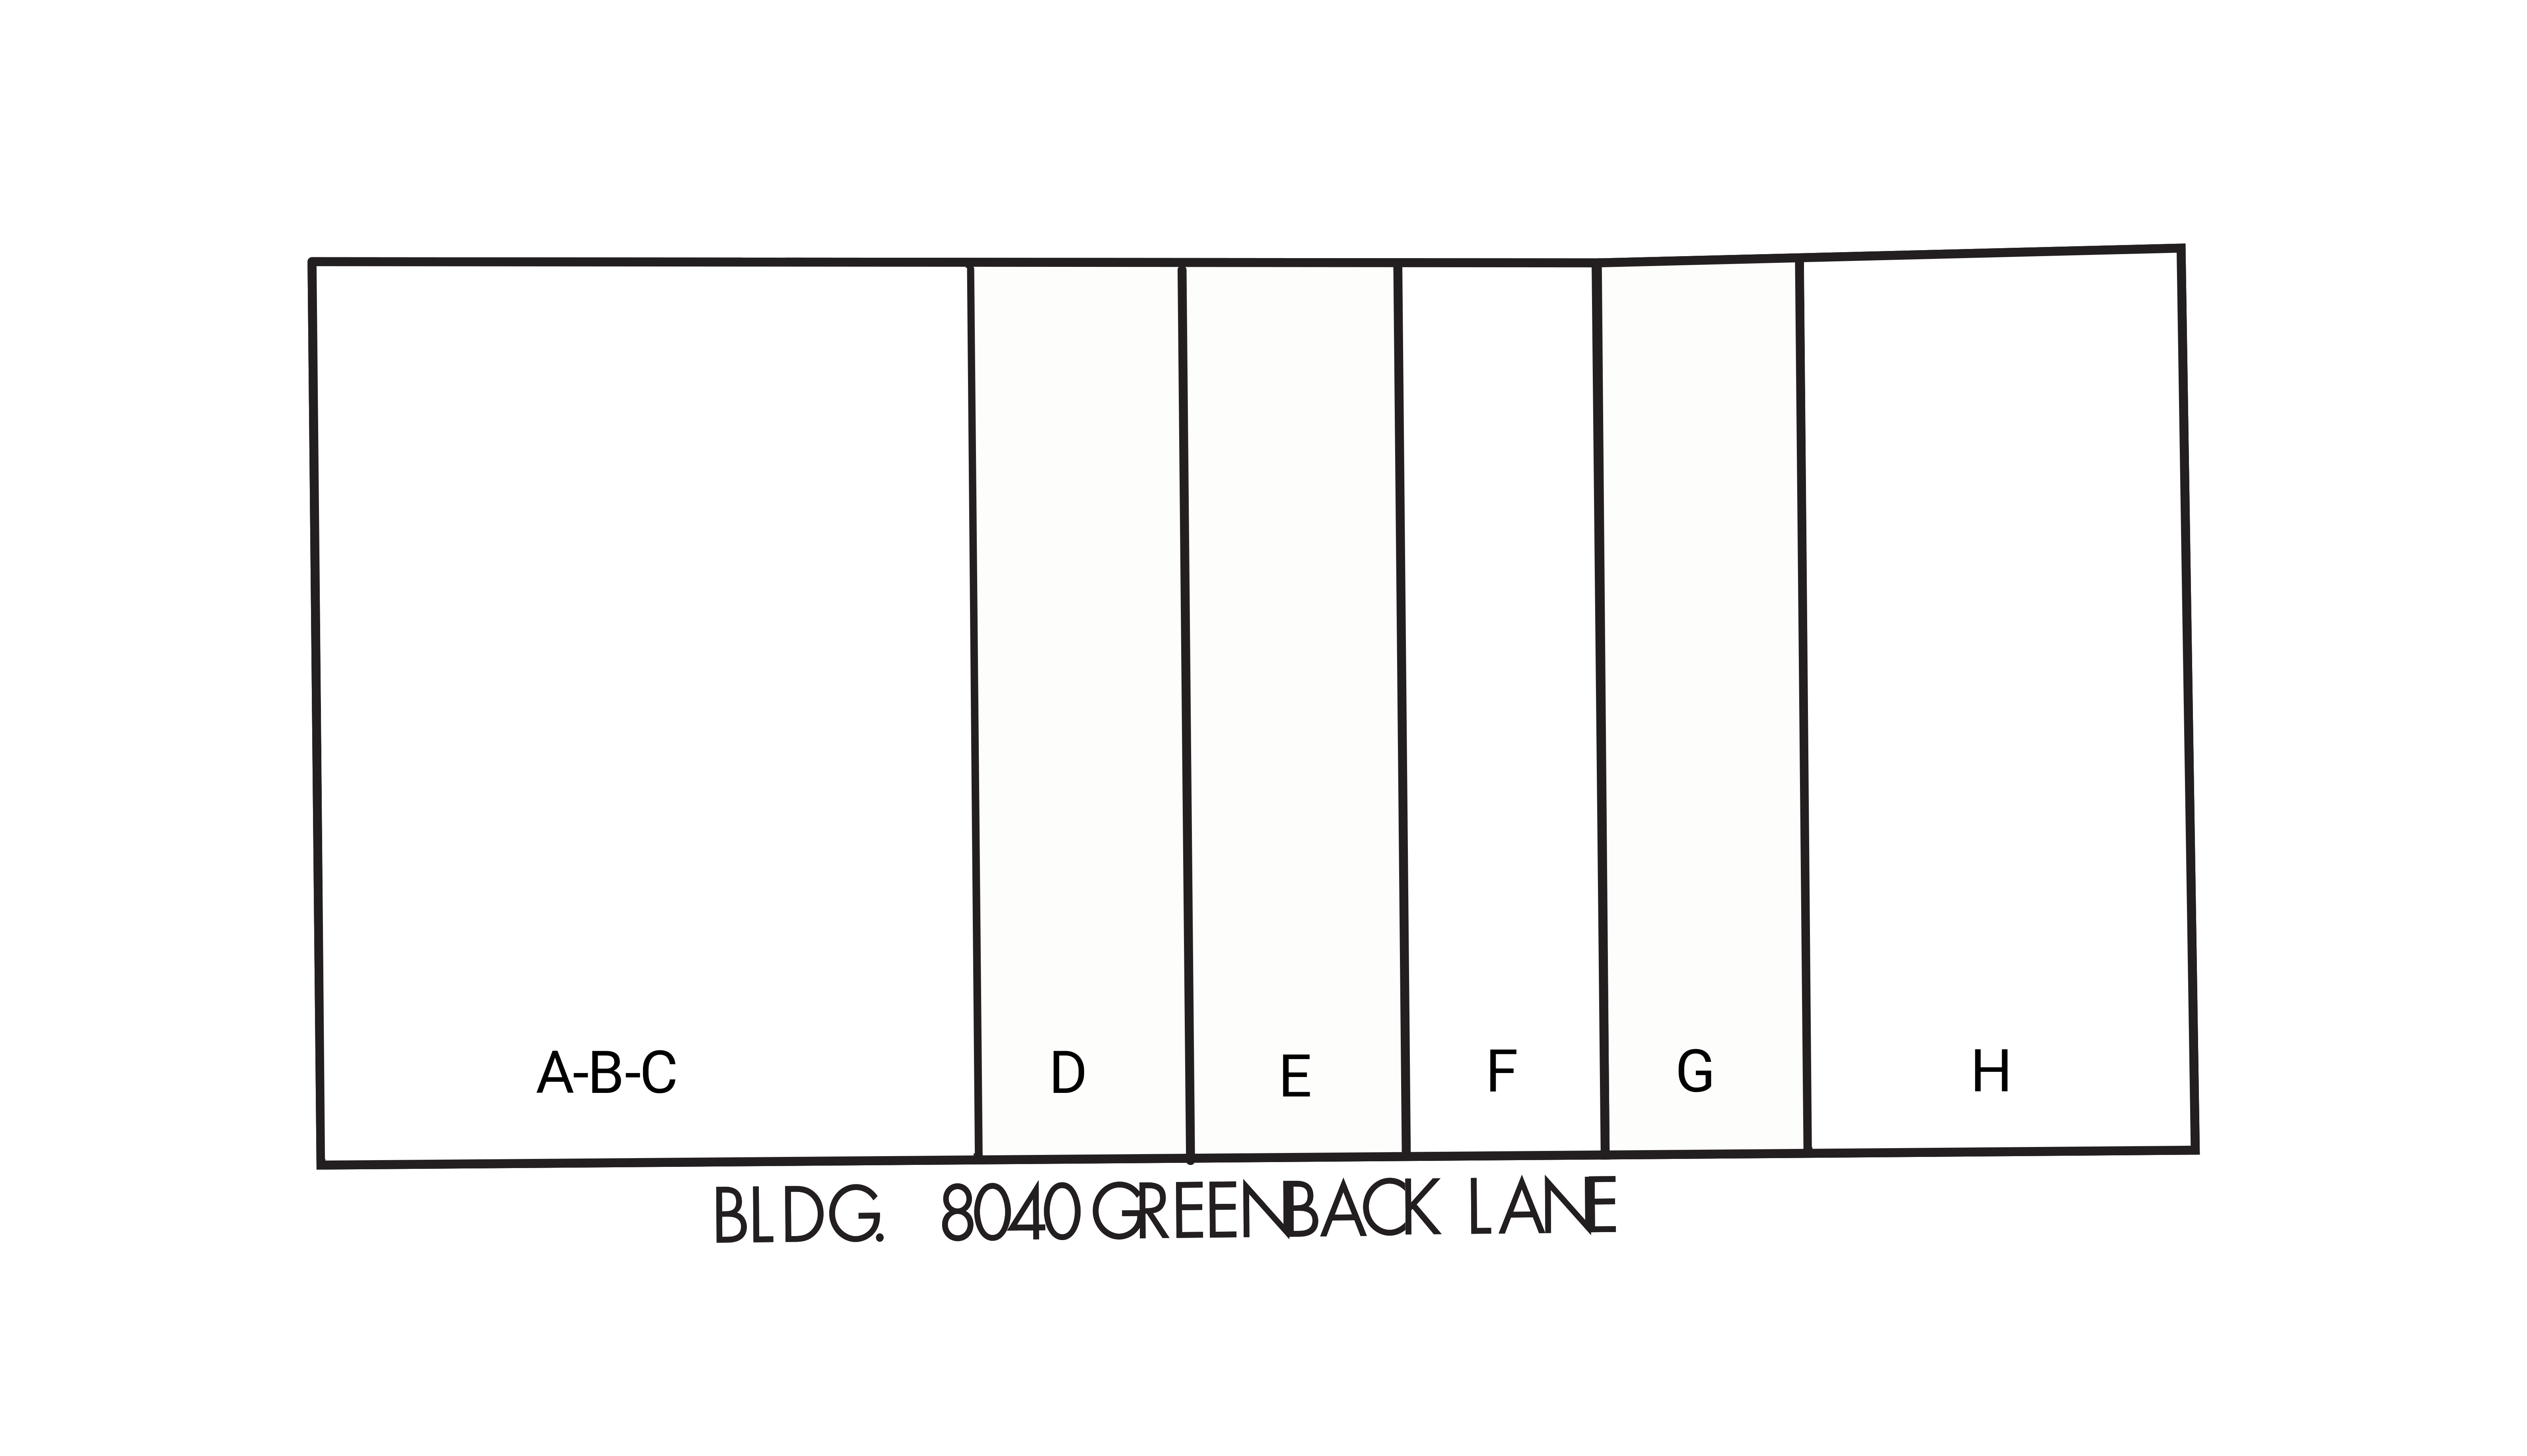 8040 Greenback Lane: site plan